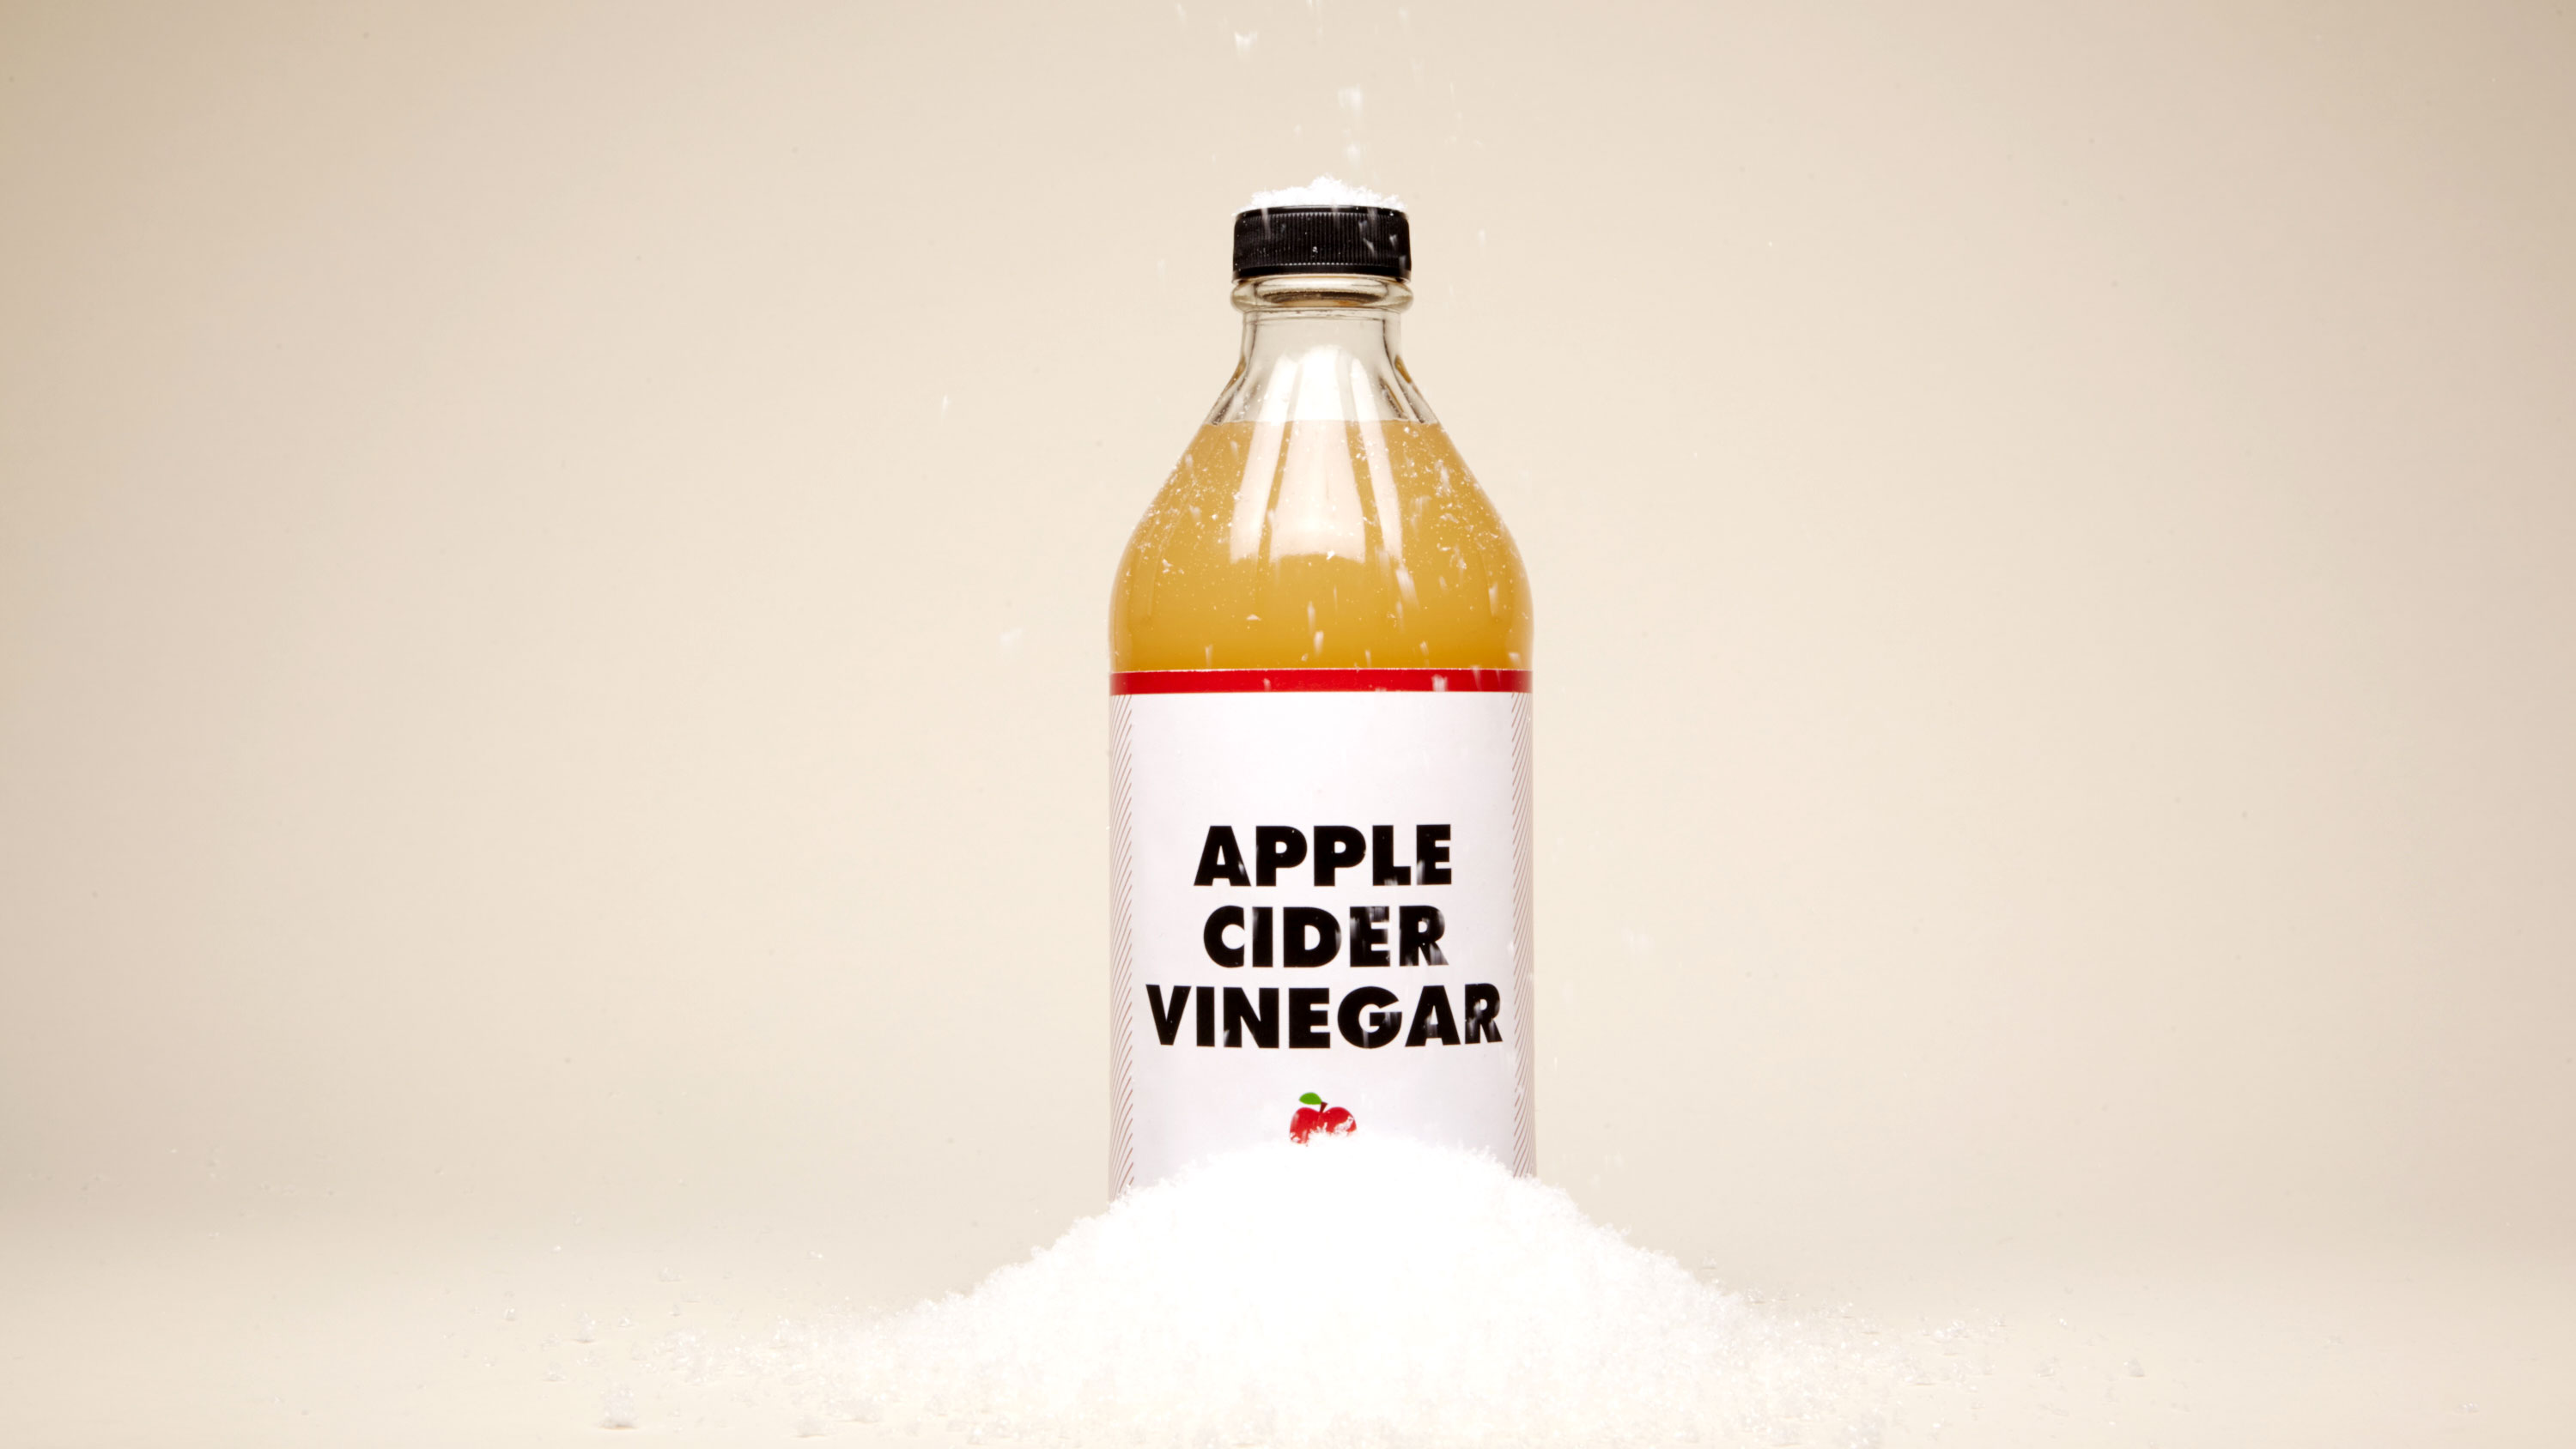 Using Apple Cider Vinegar for Treating Oral Thrush